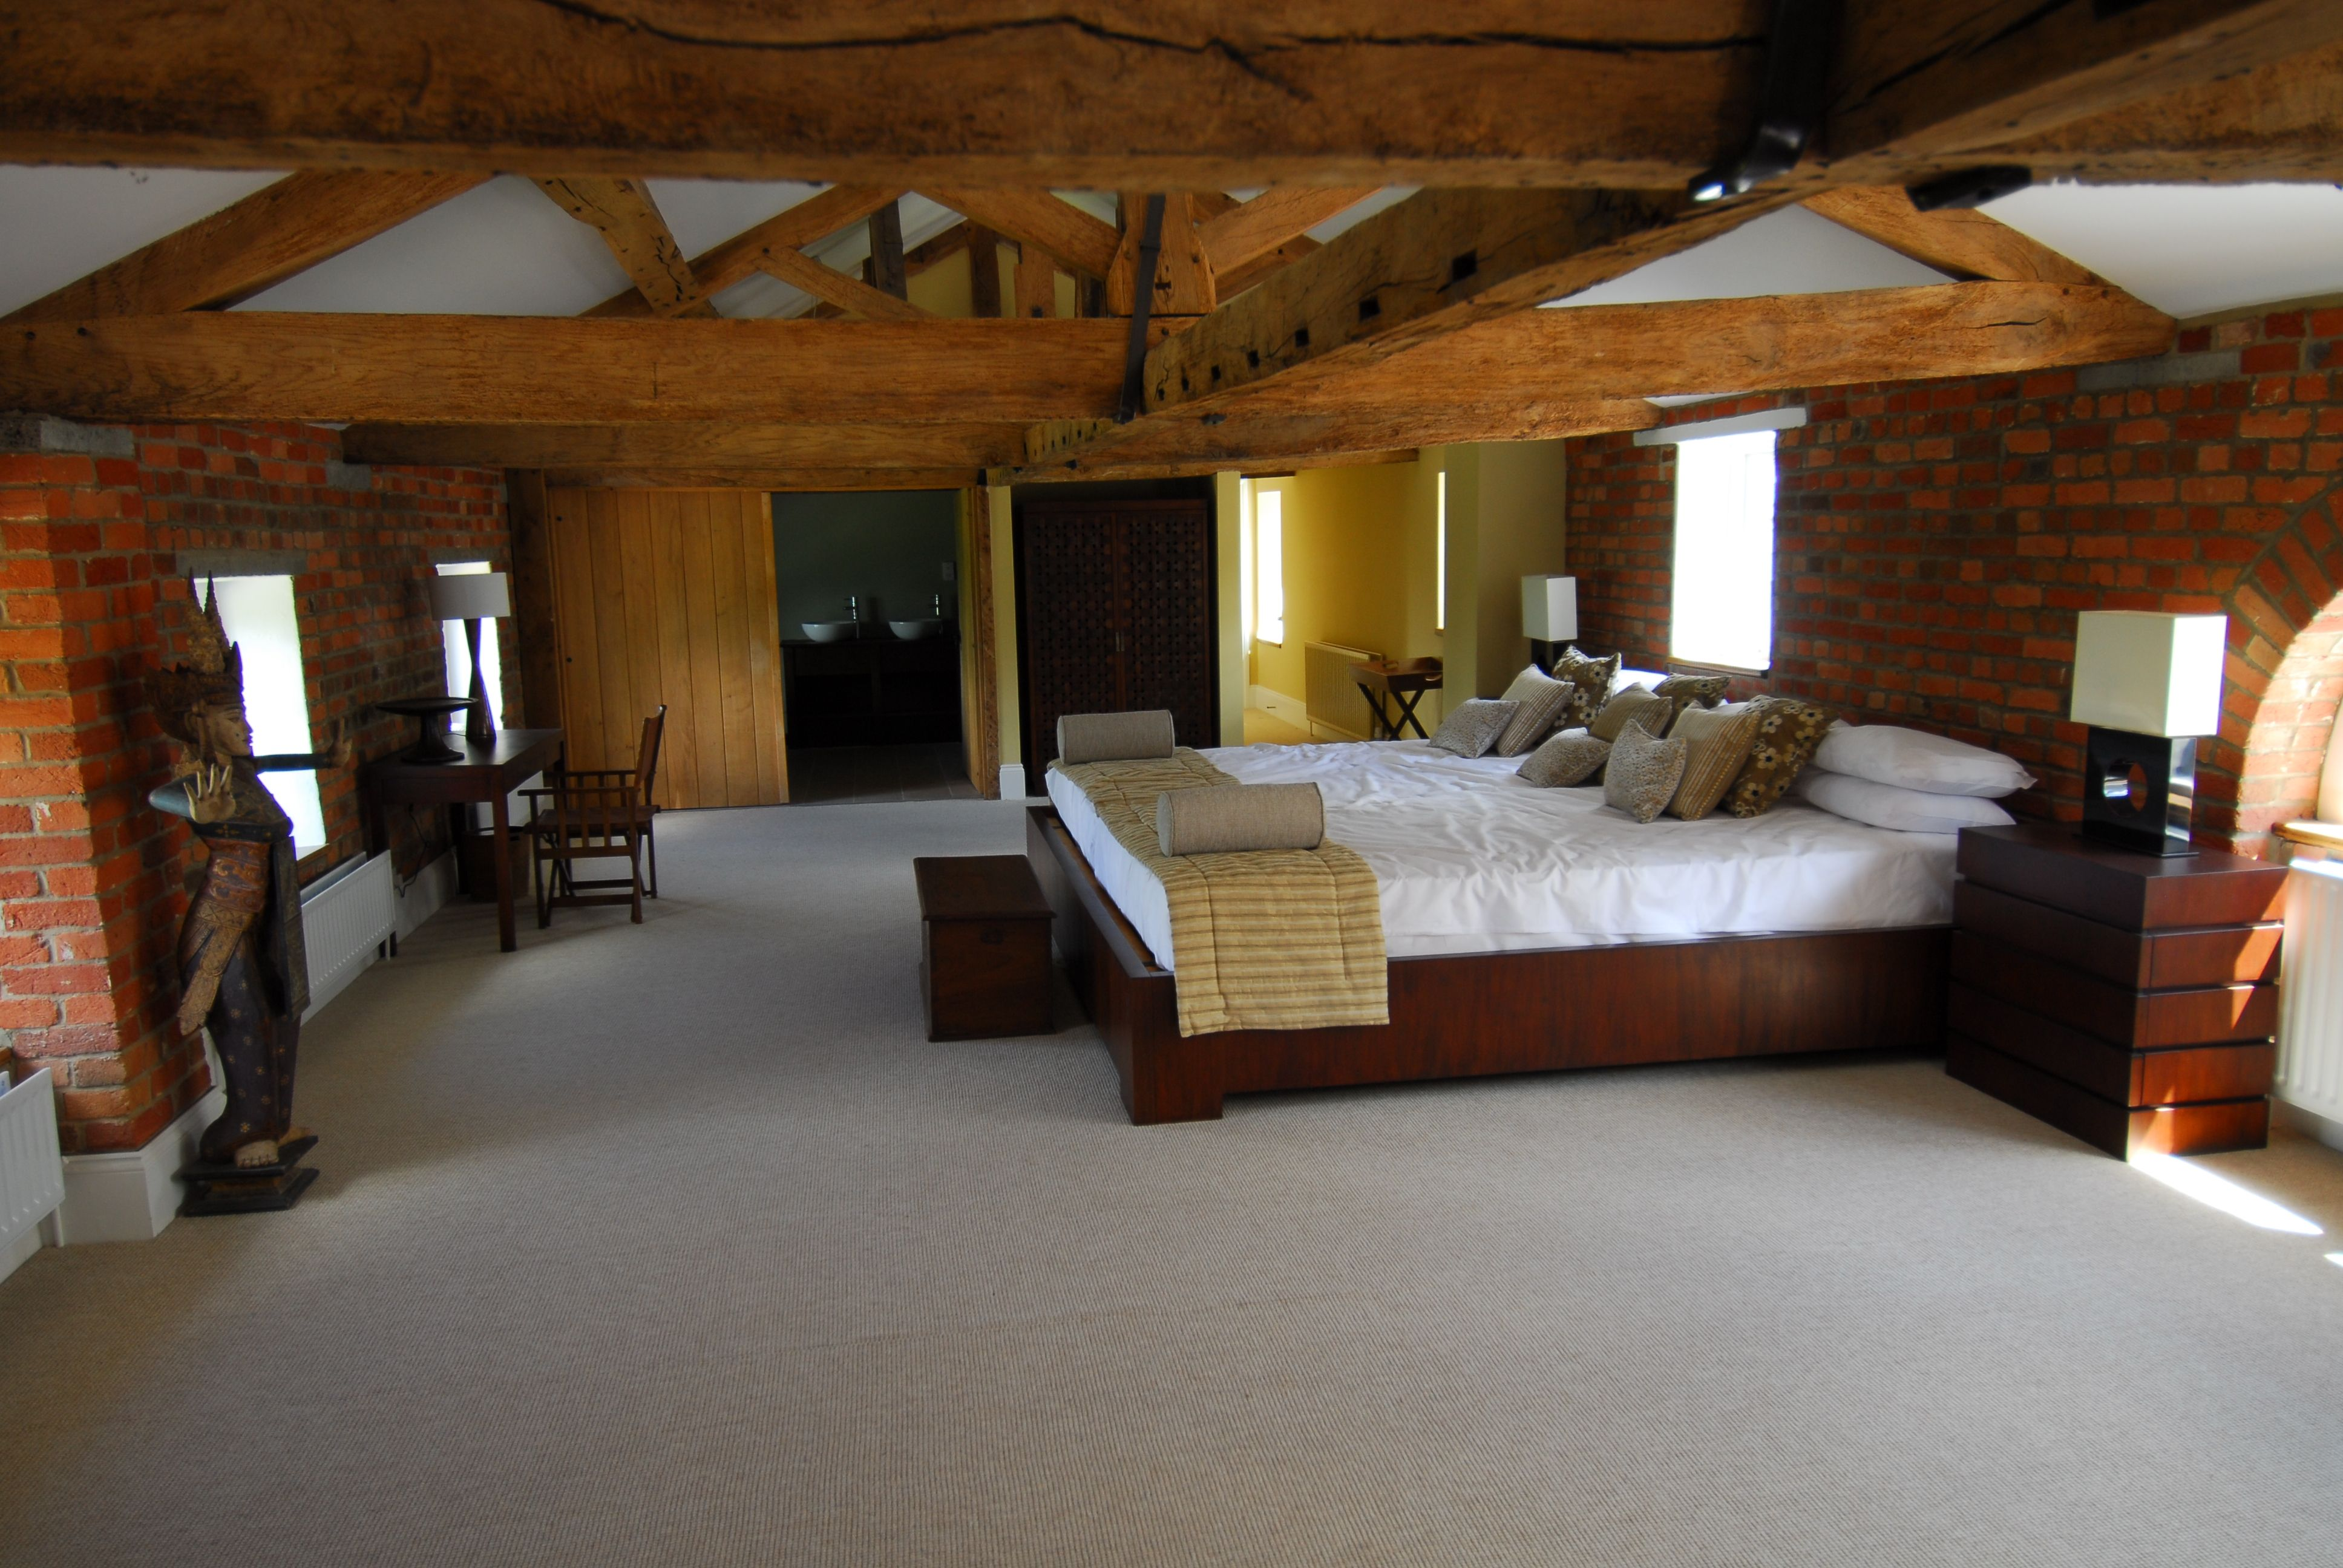 The stunning Honeymoon Suite at the Stables Lodge Wasing Park with